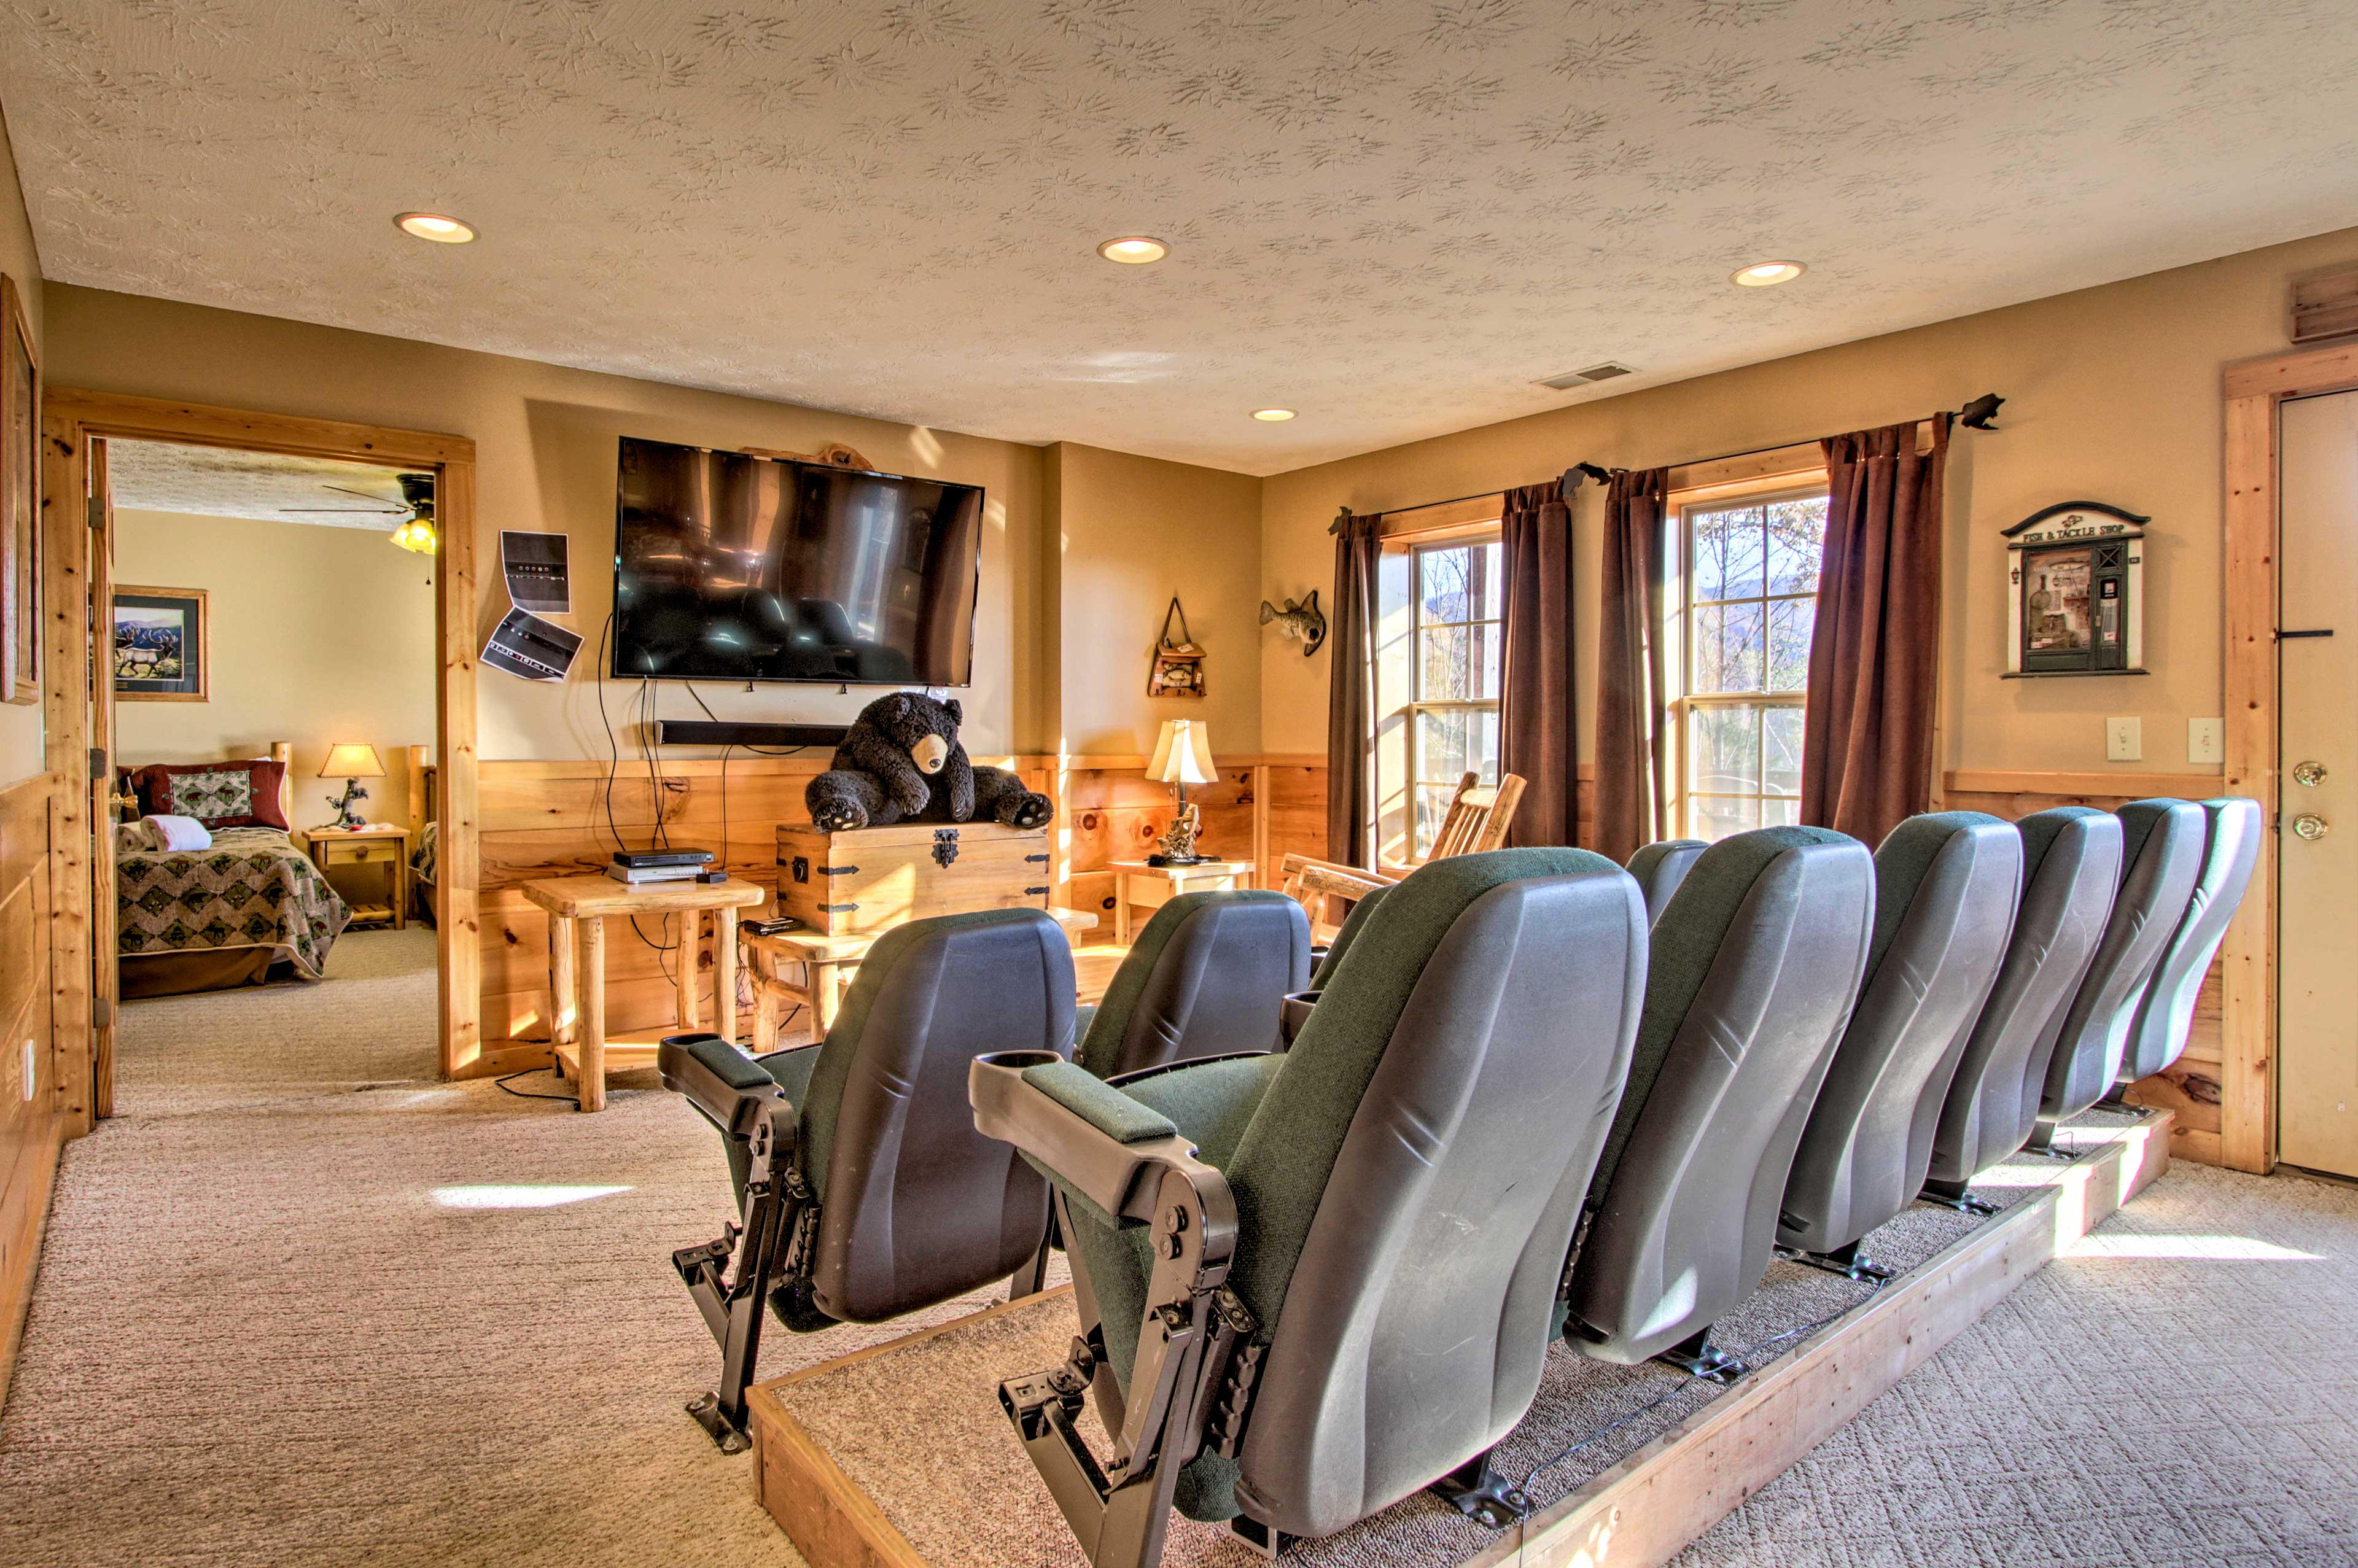 Host a movie night in the downstairs theatre room equipped with a Bose system!